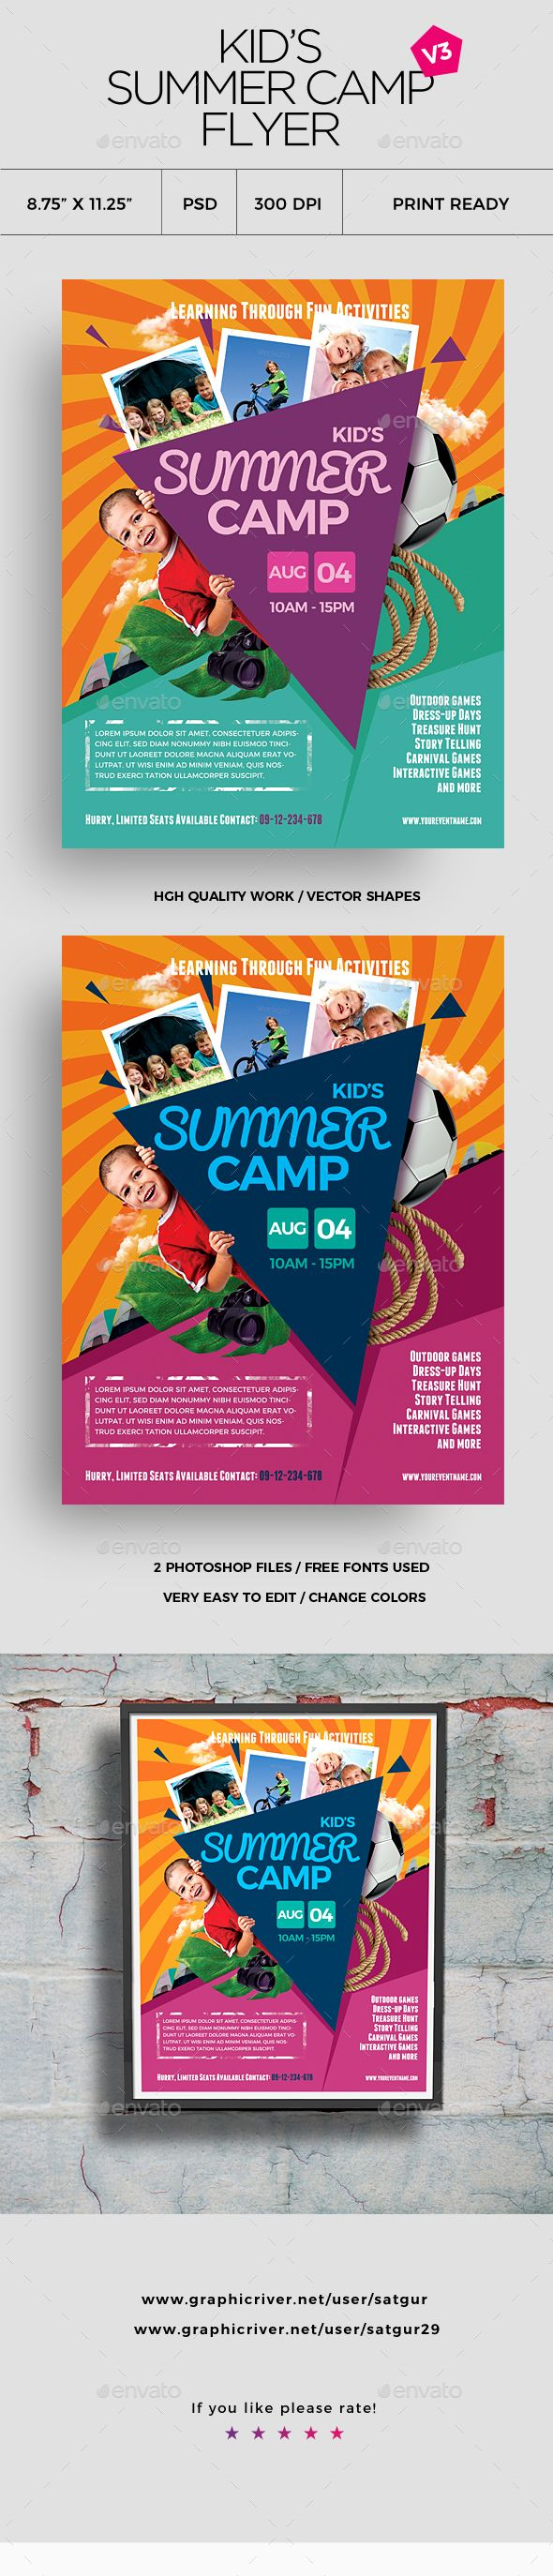 Kids Summer camp Flyer V3 | Photoshop, Camping and Flyer template